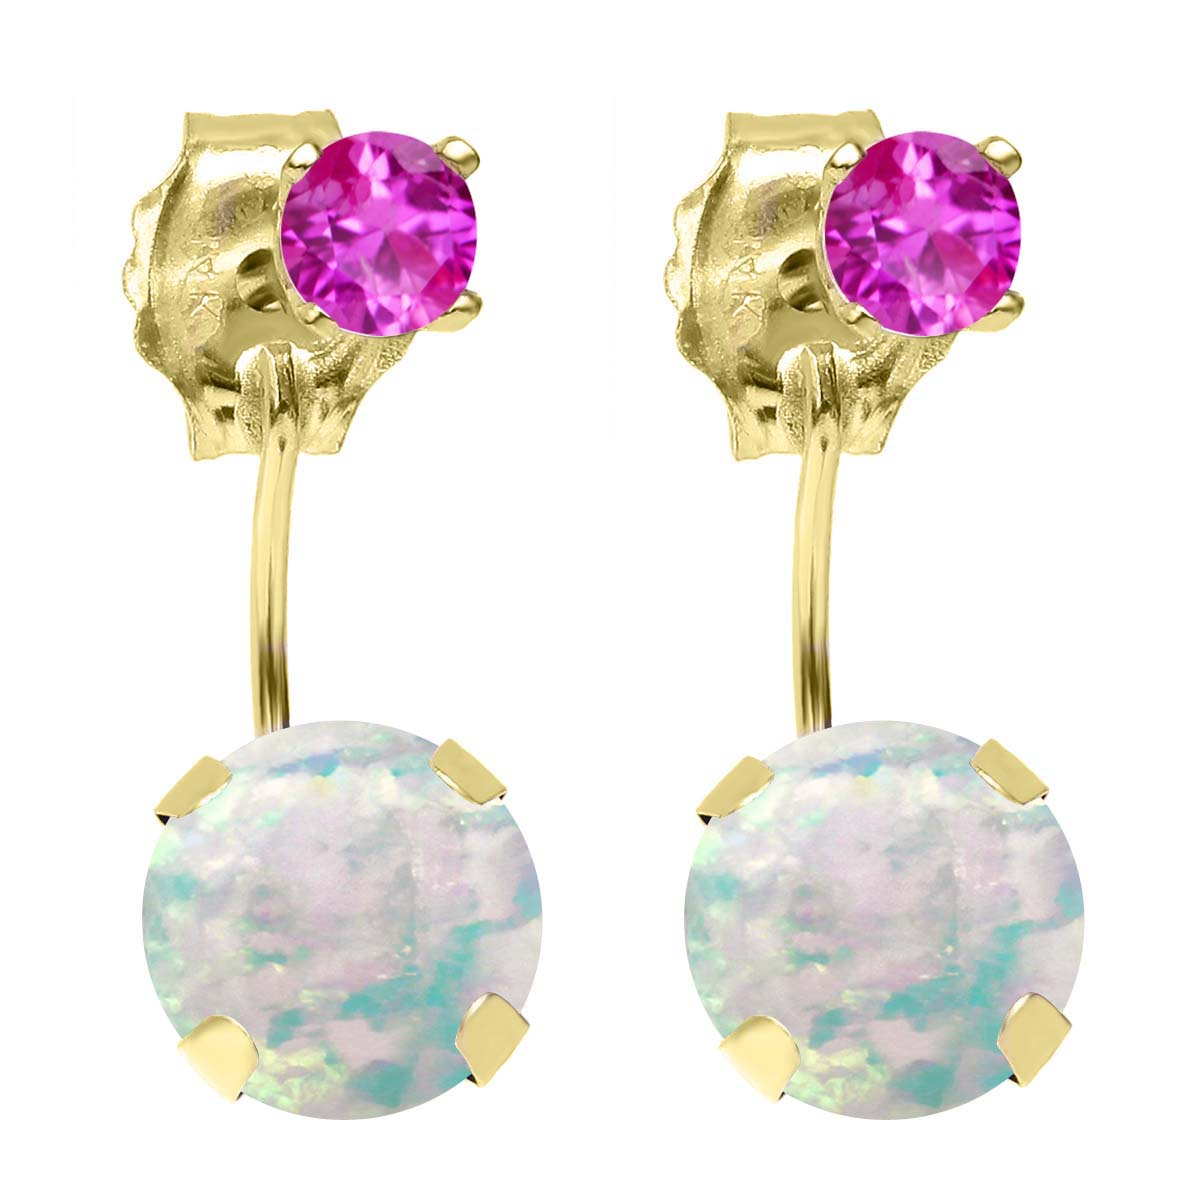 1.56 Ct Round White Simulated Opal Pink Sapphire 14K YG Top&Bottom Earrings by